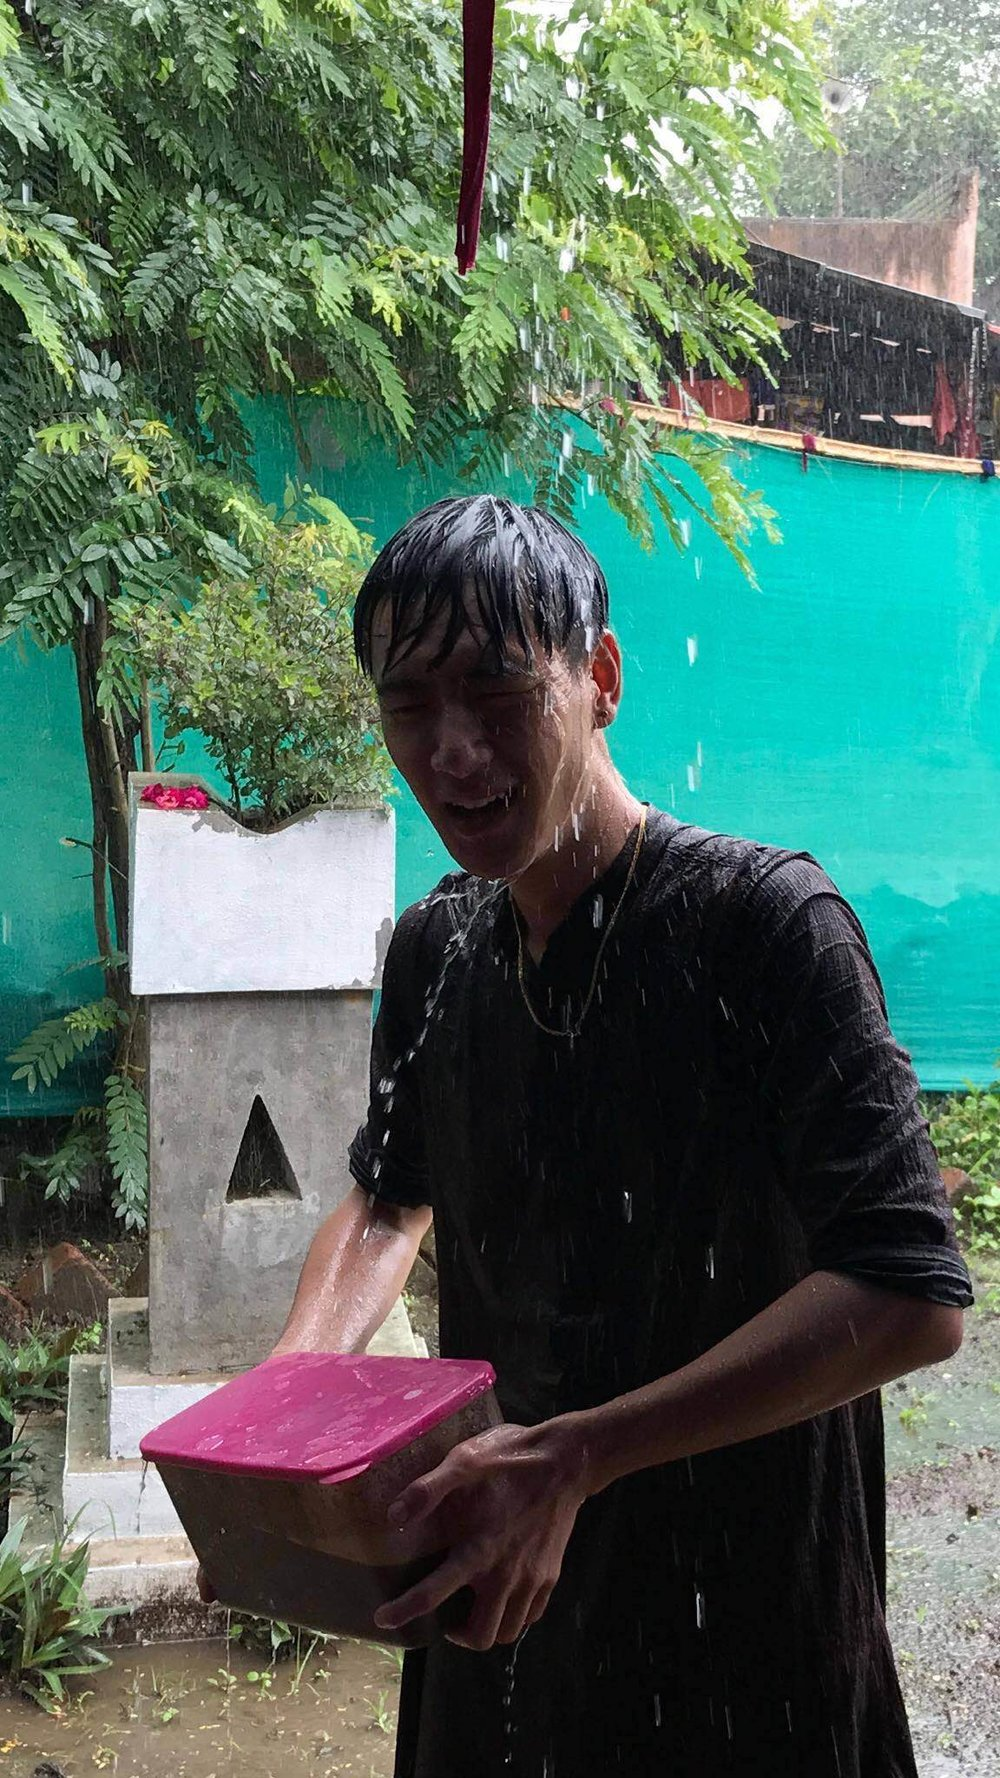 Michael caught in a monsoonal downpour, after assisting Sudam in the fields all day.